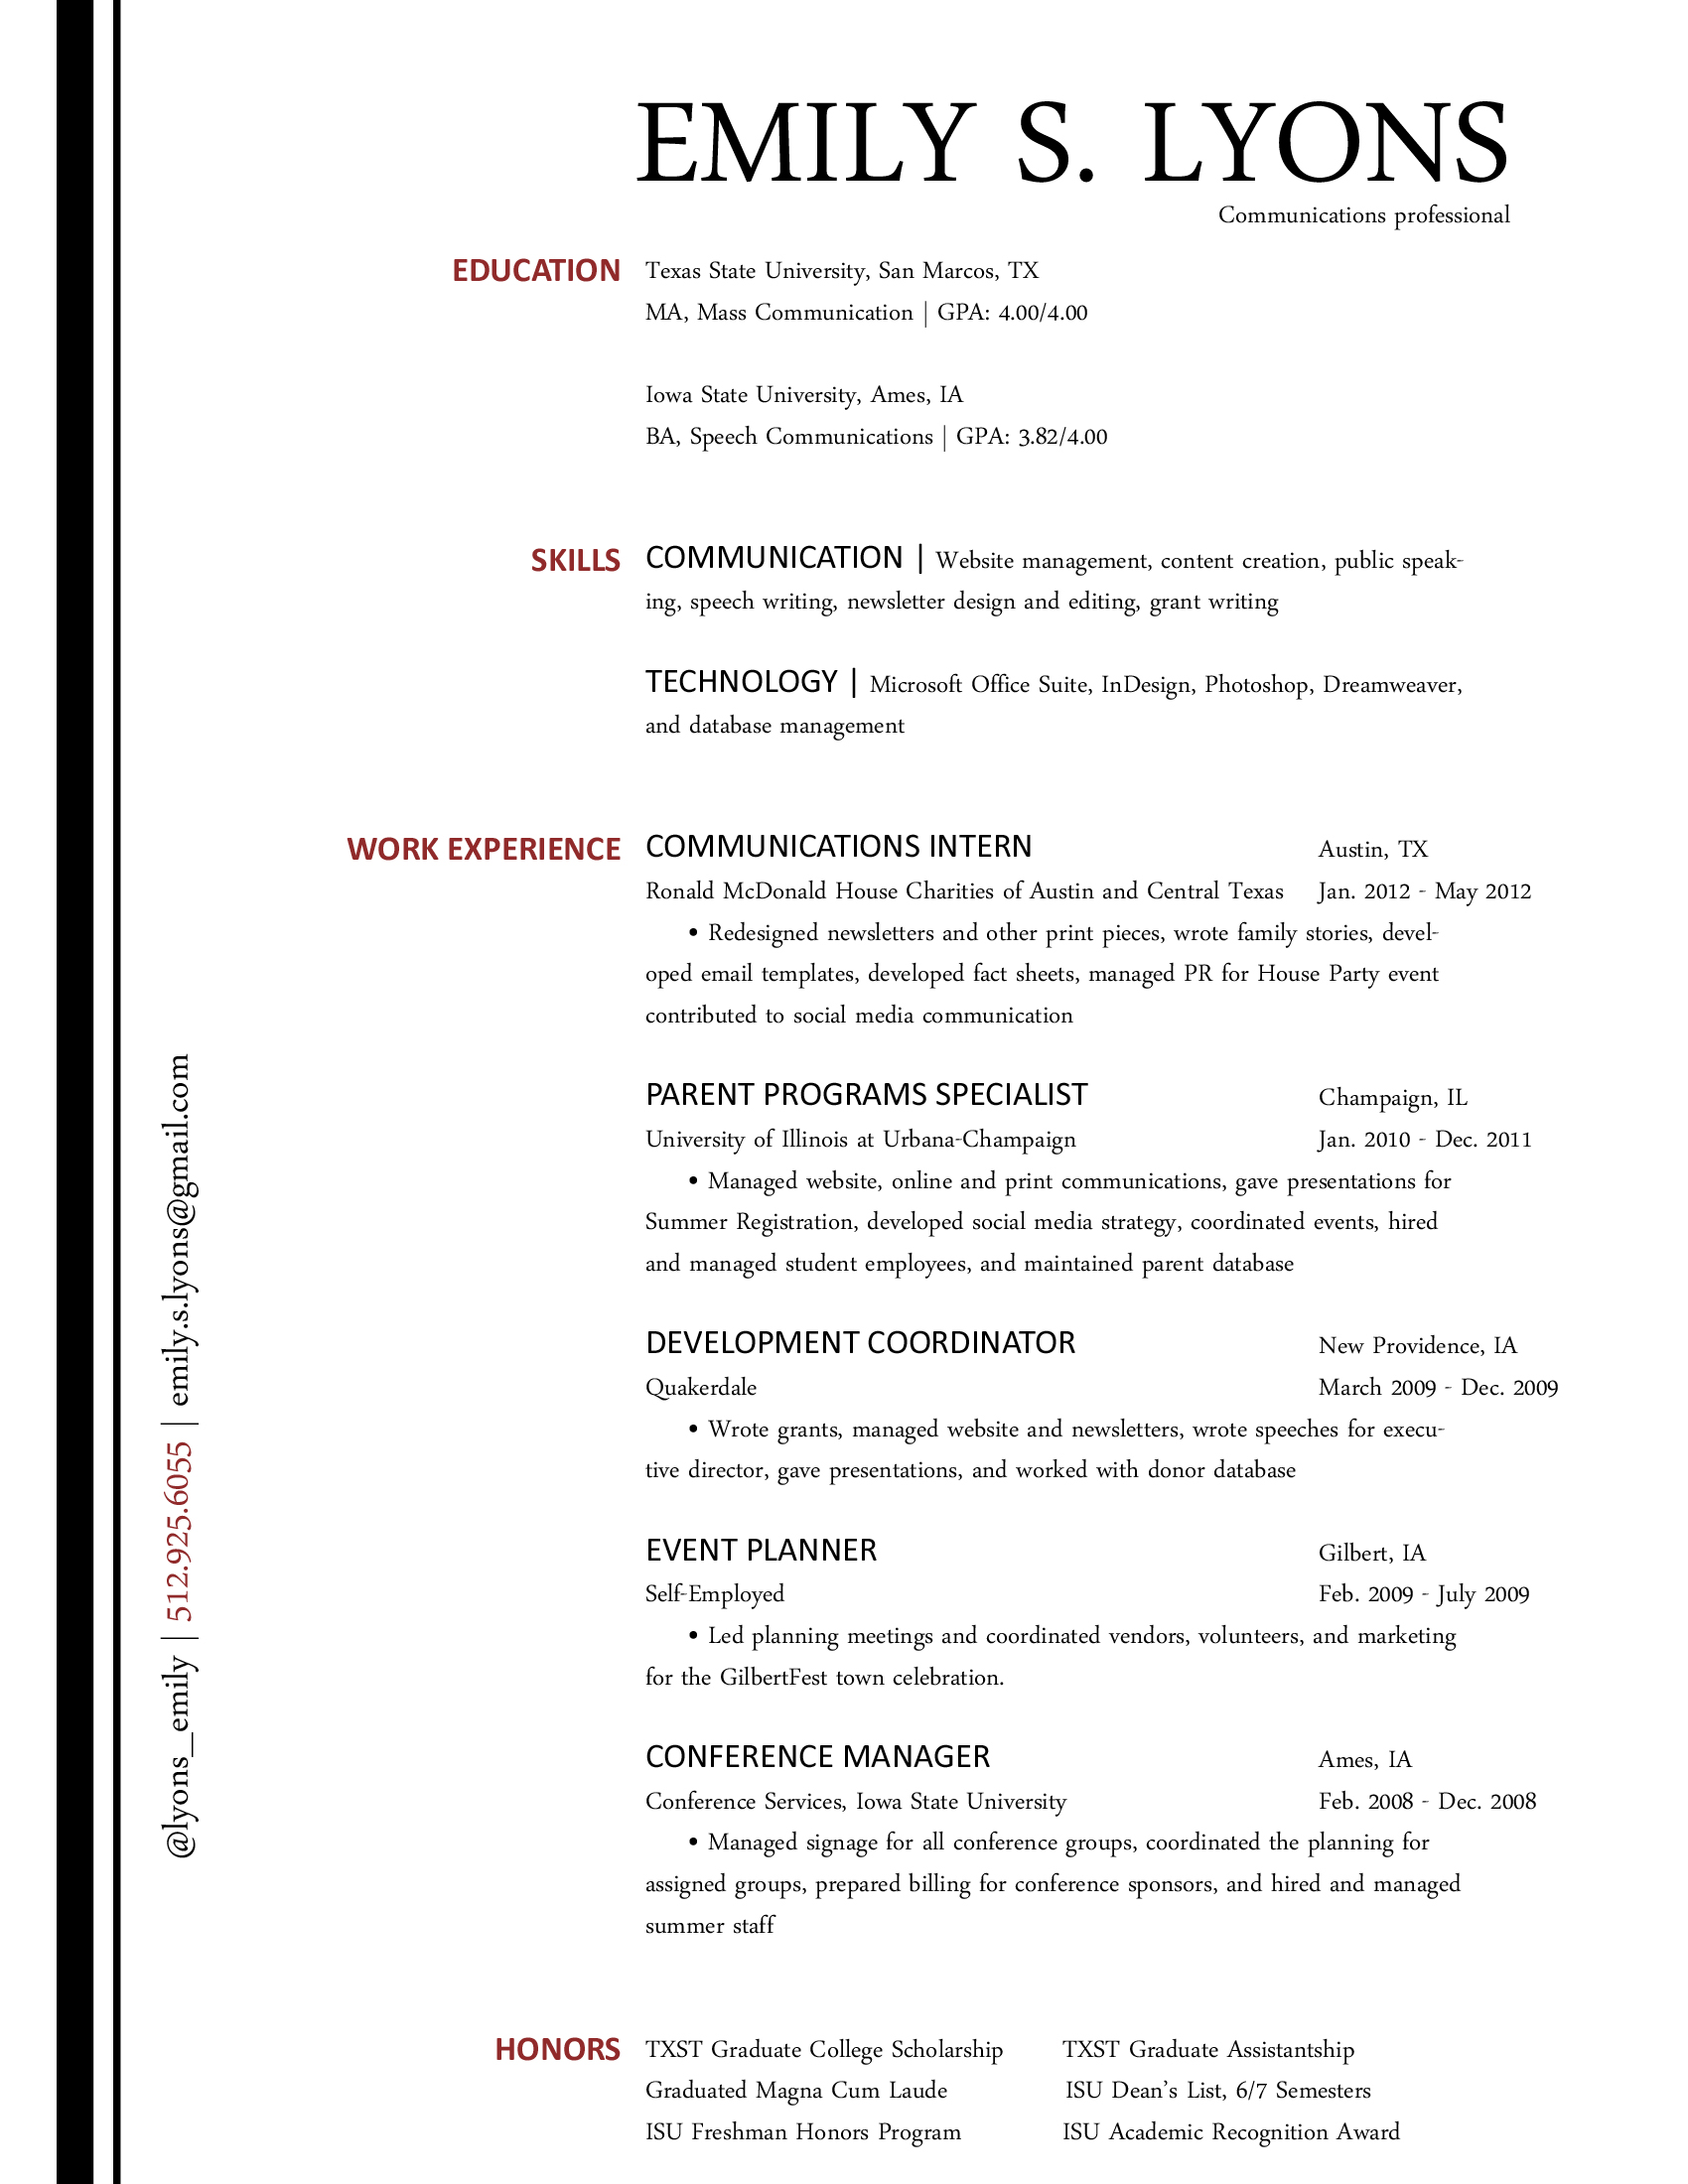 Excellent Communication Skills Resume Example The Communications Resume Blossoming Communications